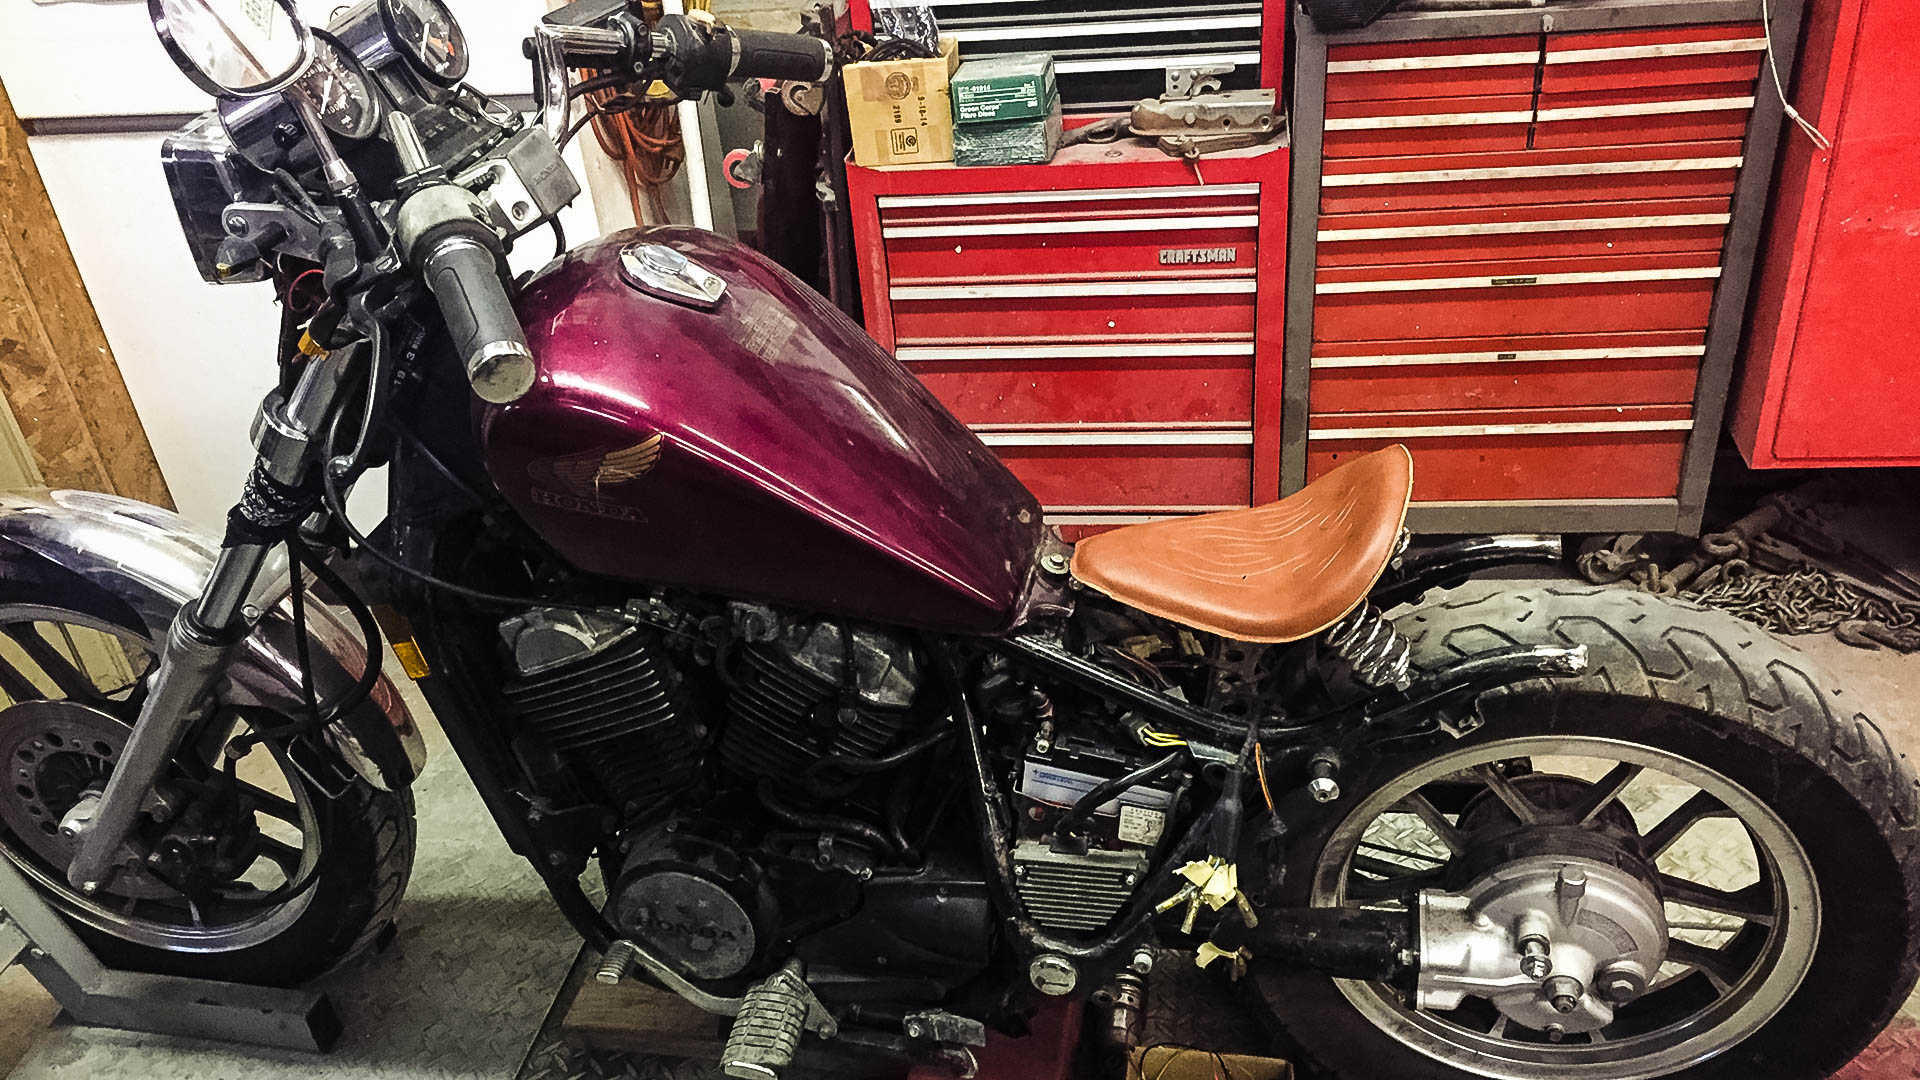 1983 Honda Shadow Vt500c Dennis Kirk Garage Build